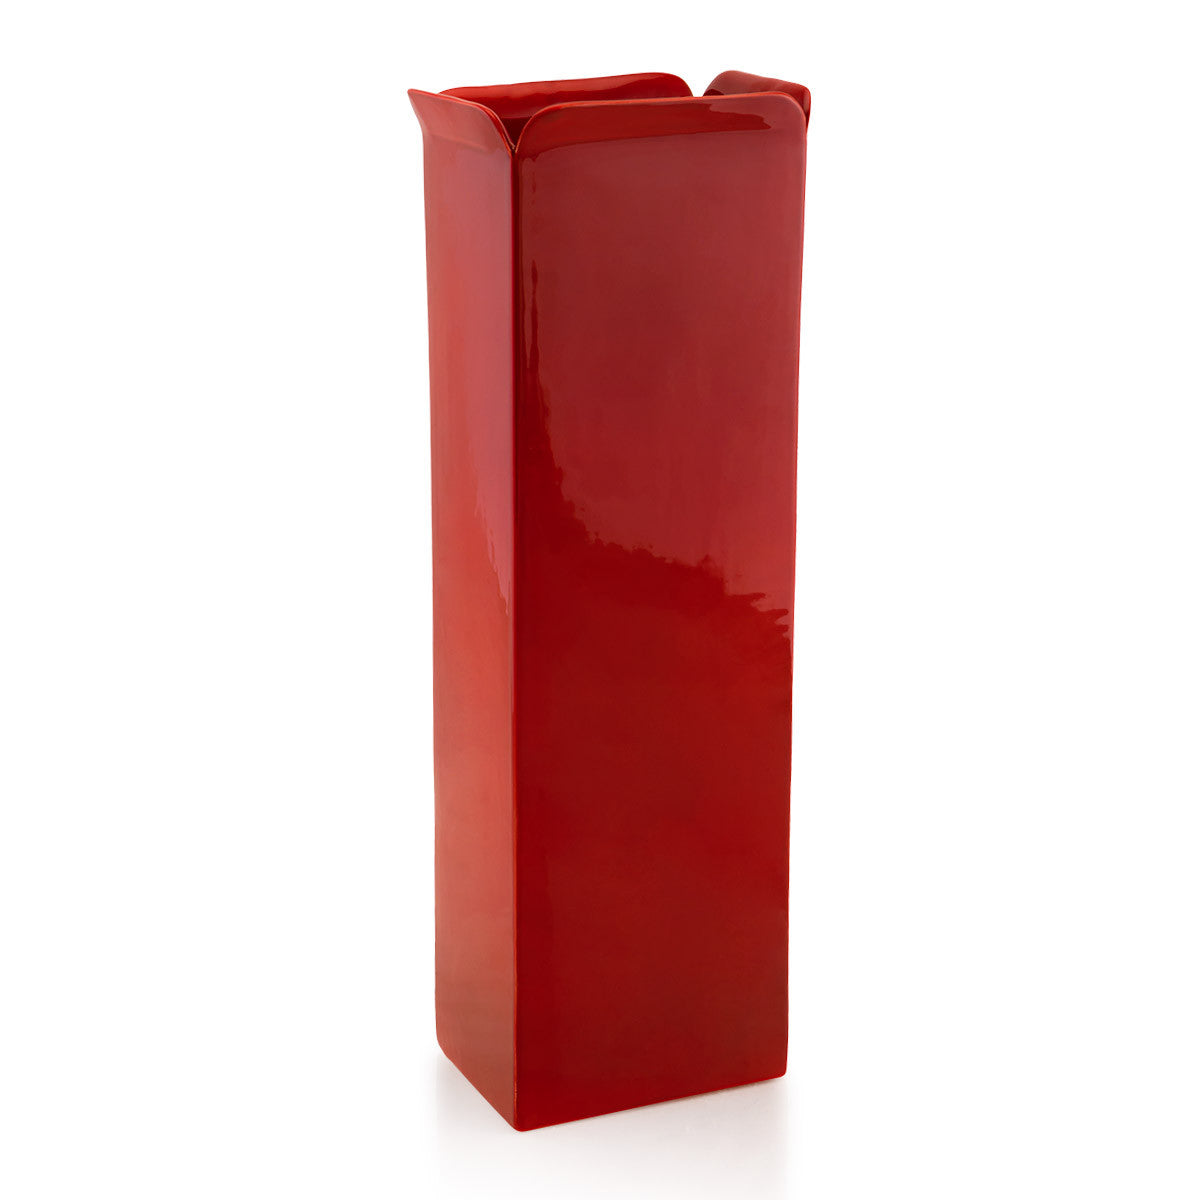 Ceramic rectangular long vase red color